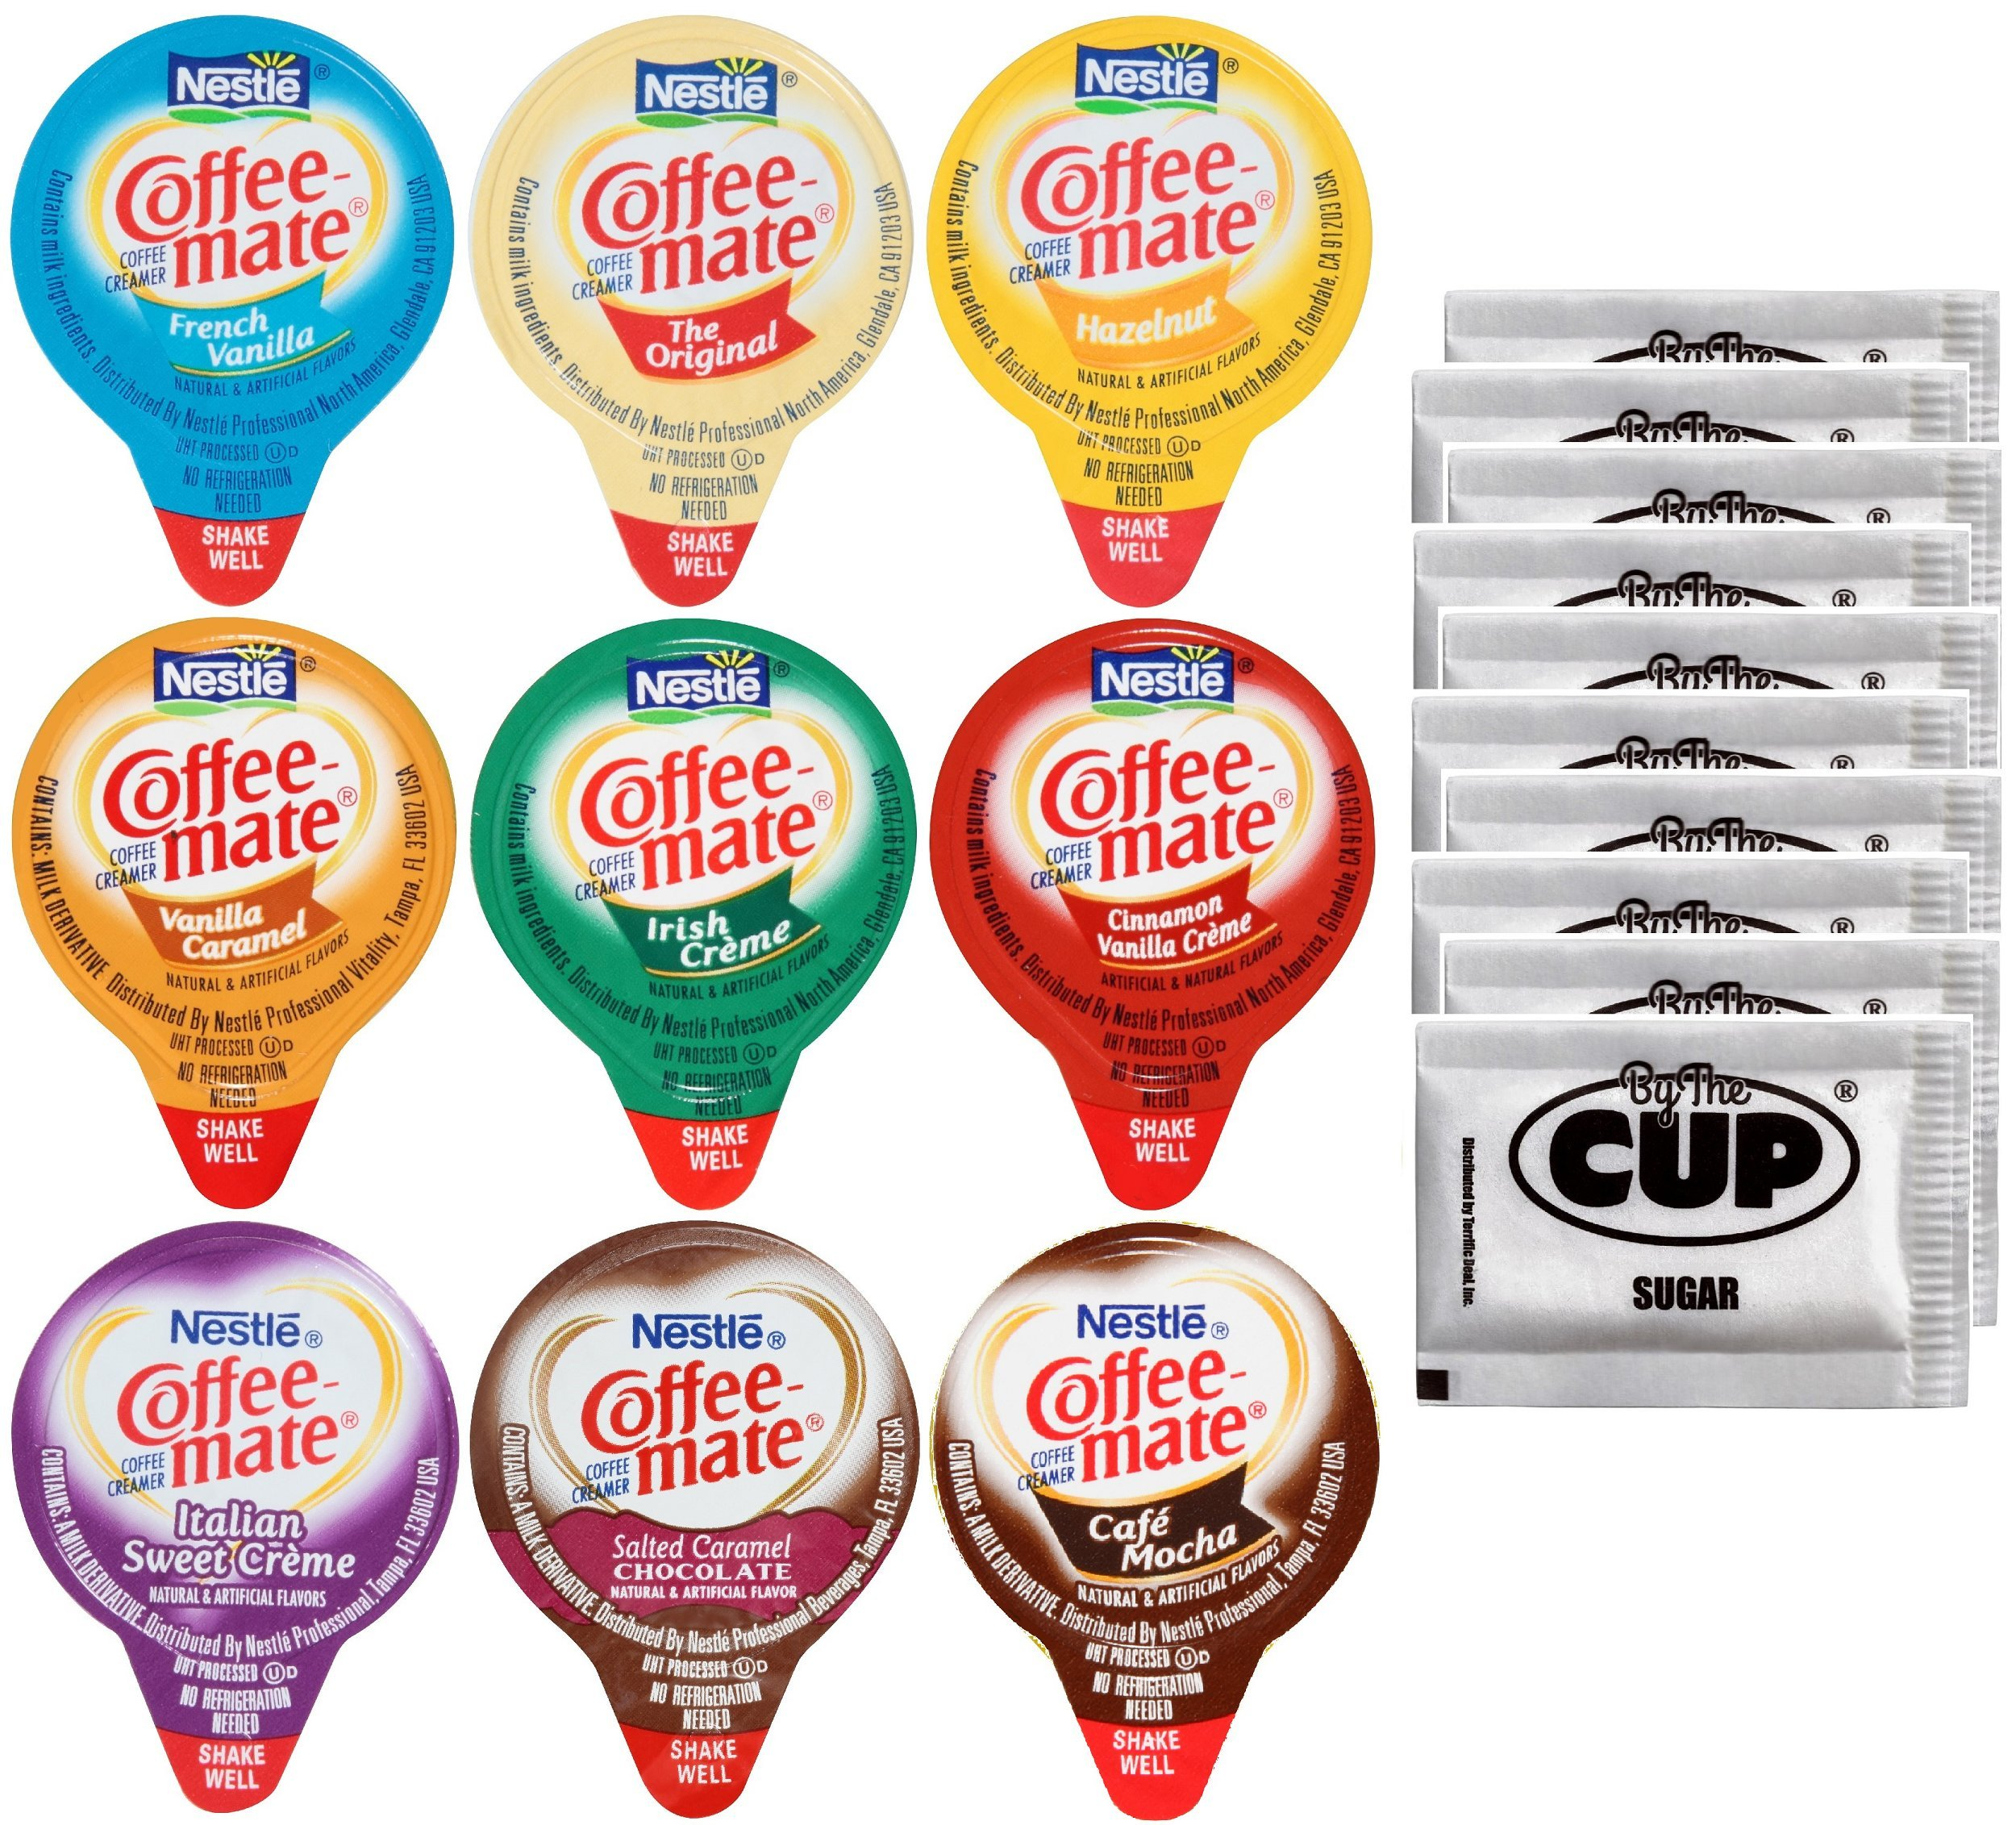 Coffee Mate .375oz Non-Dairy Liquid Creamer Singles - 9 Flavor Assortment, Hazelnut, French Vanilla, Original, Cafe Mocha, Salted Caramel (36 Pack) - Exclusive By The Cup Sugar Packets by By The Cup